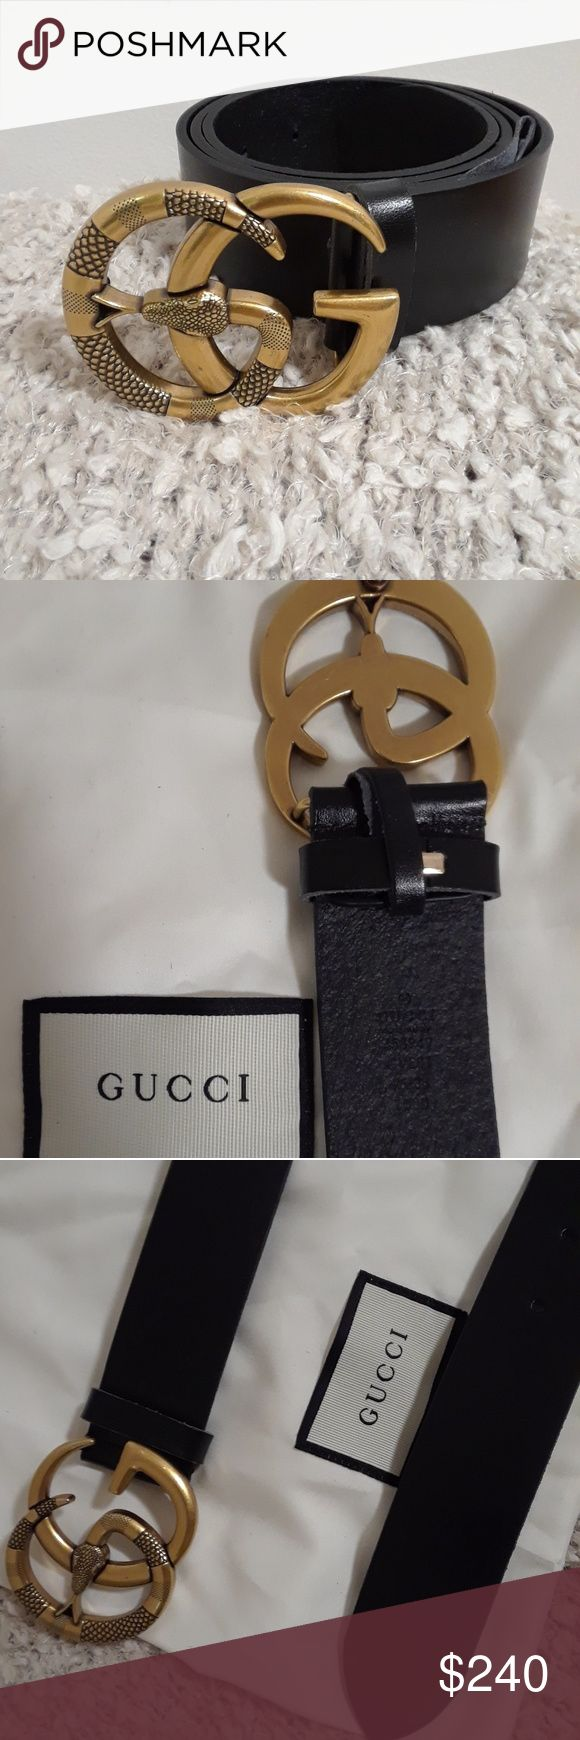 Brand new Gucci black leather belt Brand new Gucci black leather belt with double G sneak gold buckle 100% authentic or money back Gucci Accessories Belts